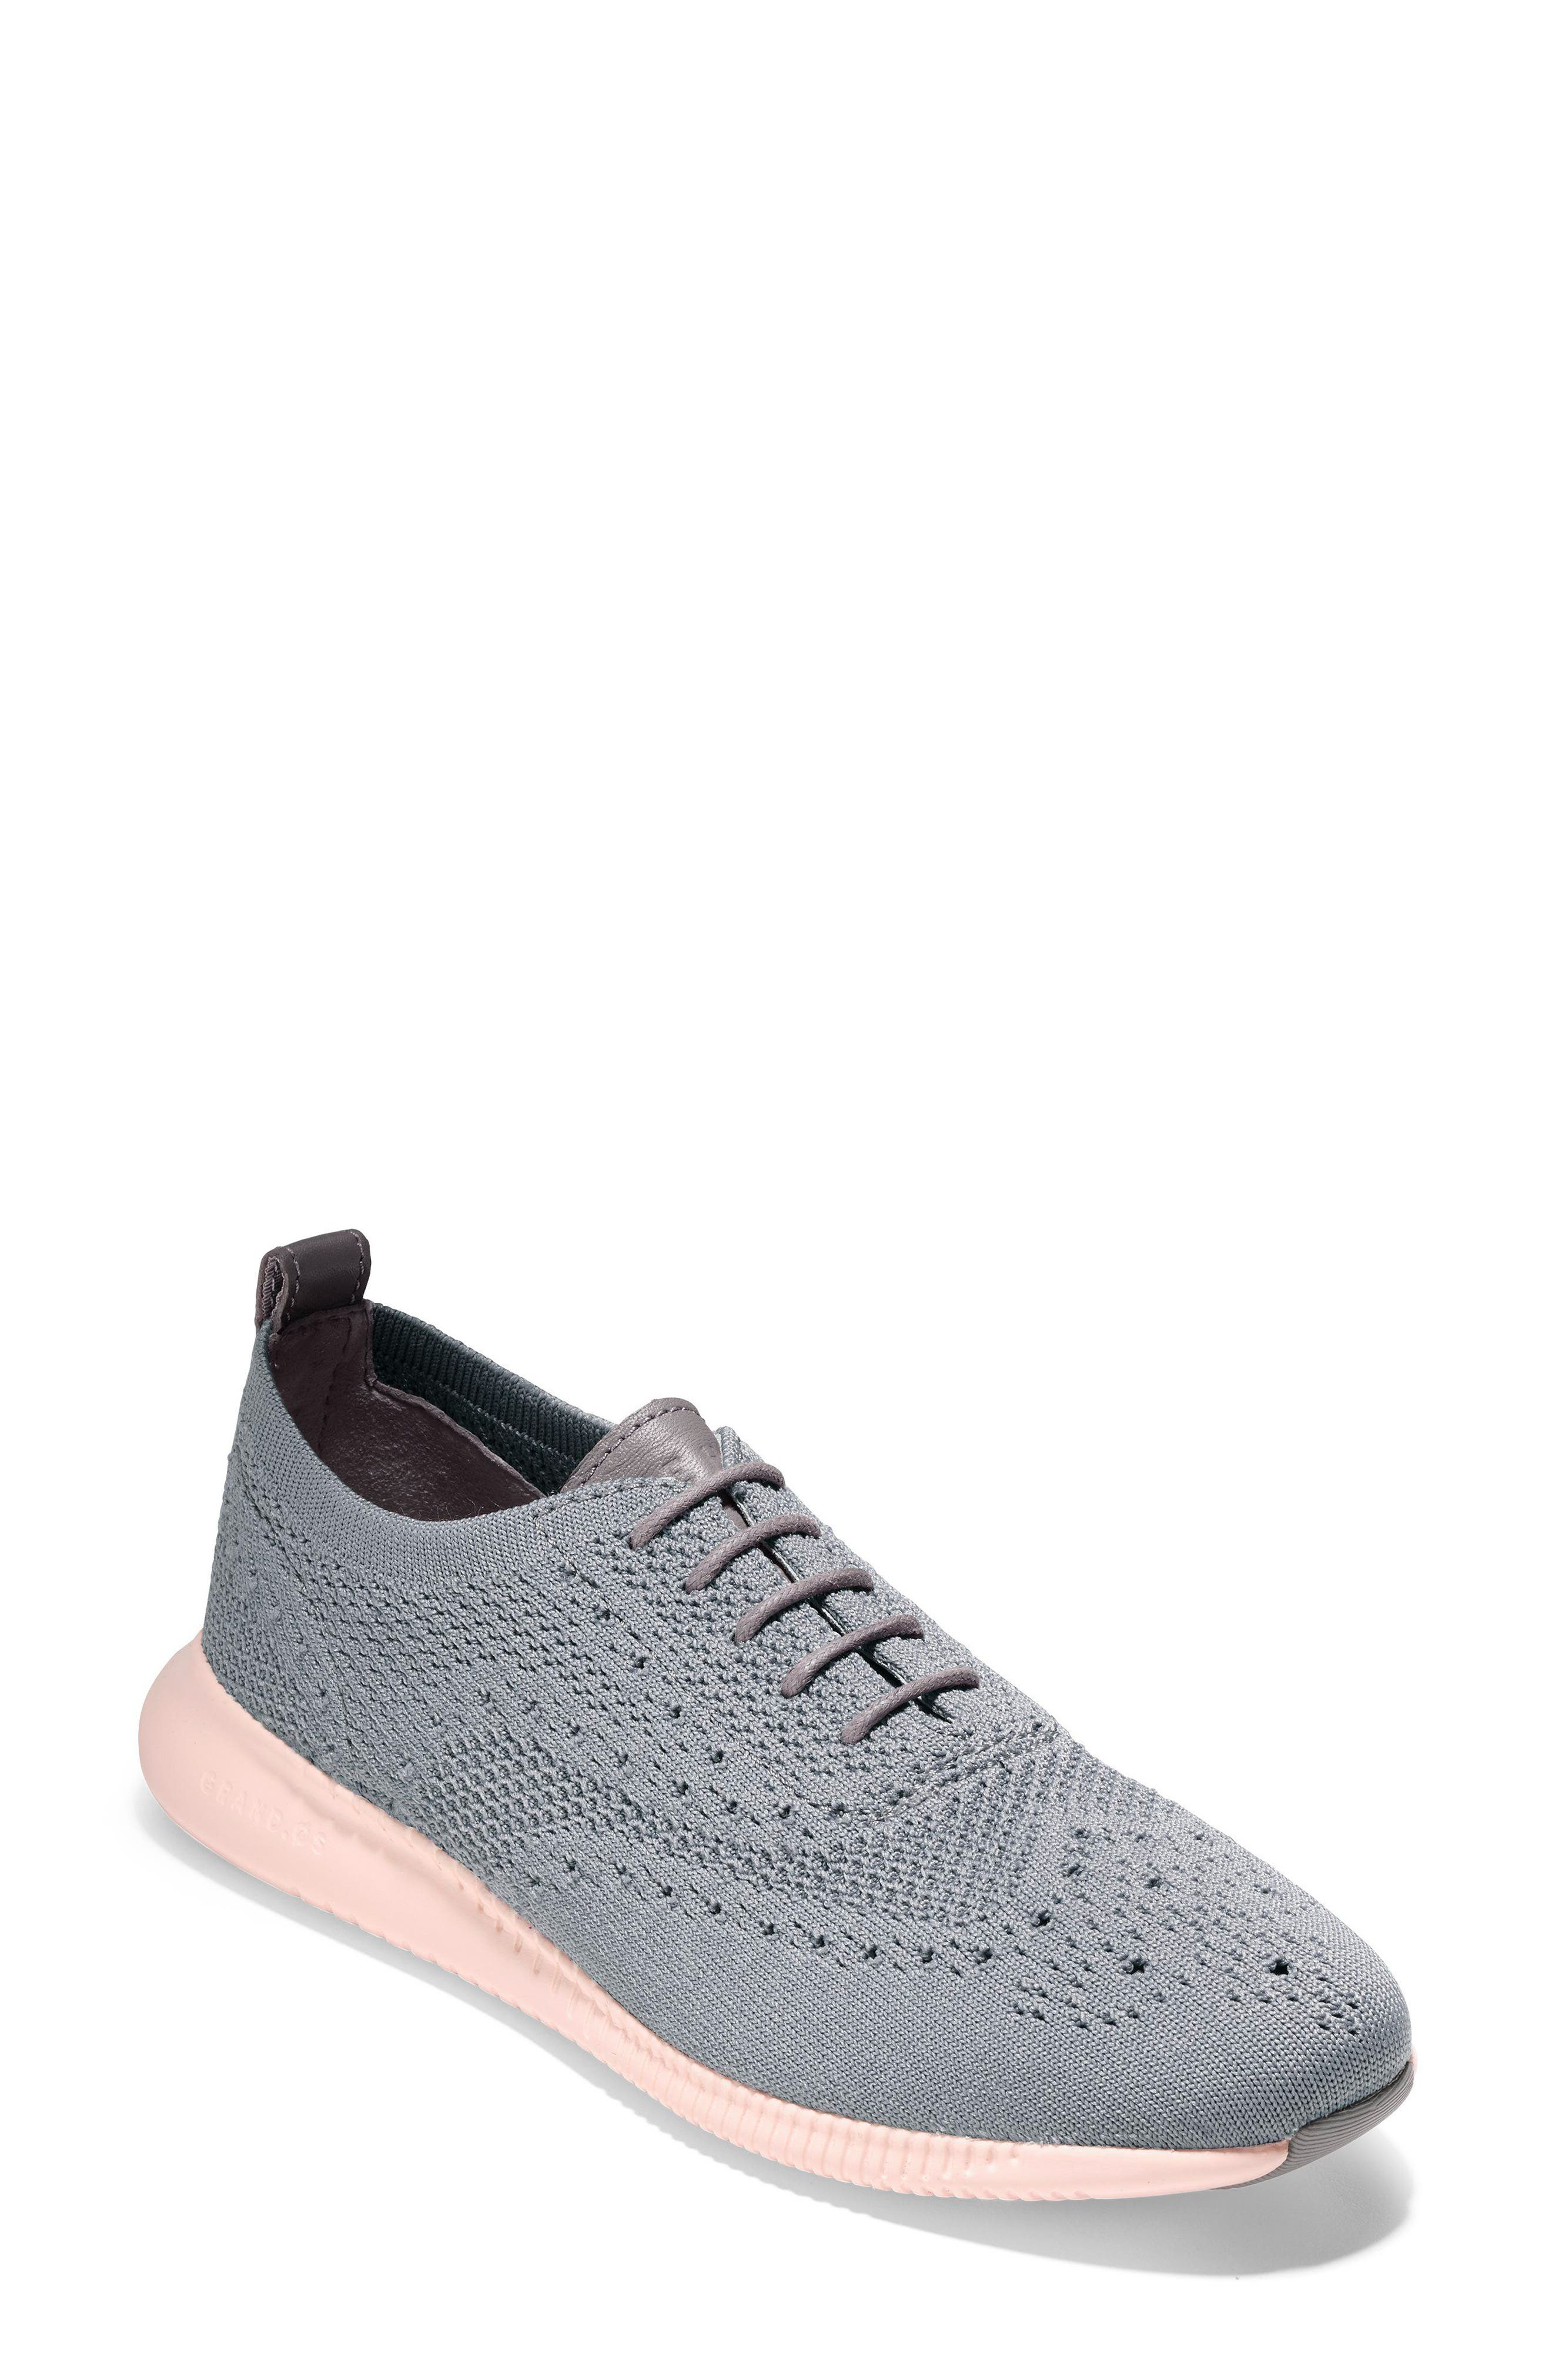 2.ZERØGRAND Stitchlite Wingtip Sneaker,                             Main thumbnail 1, color,                             Ironstone Knit Fabric